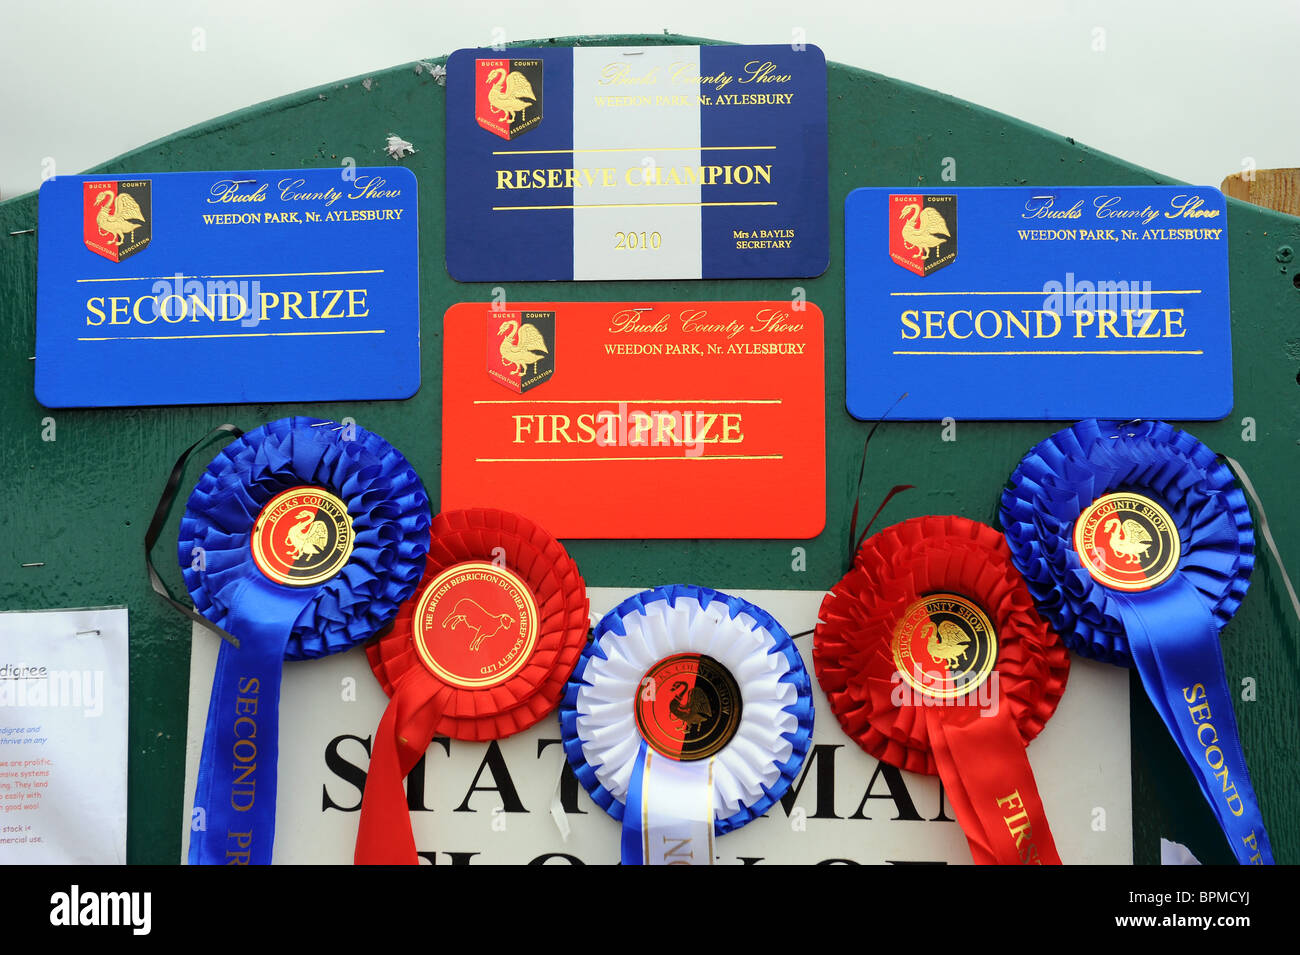 Prize rosettes at the Bucks County Show - Stock Image